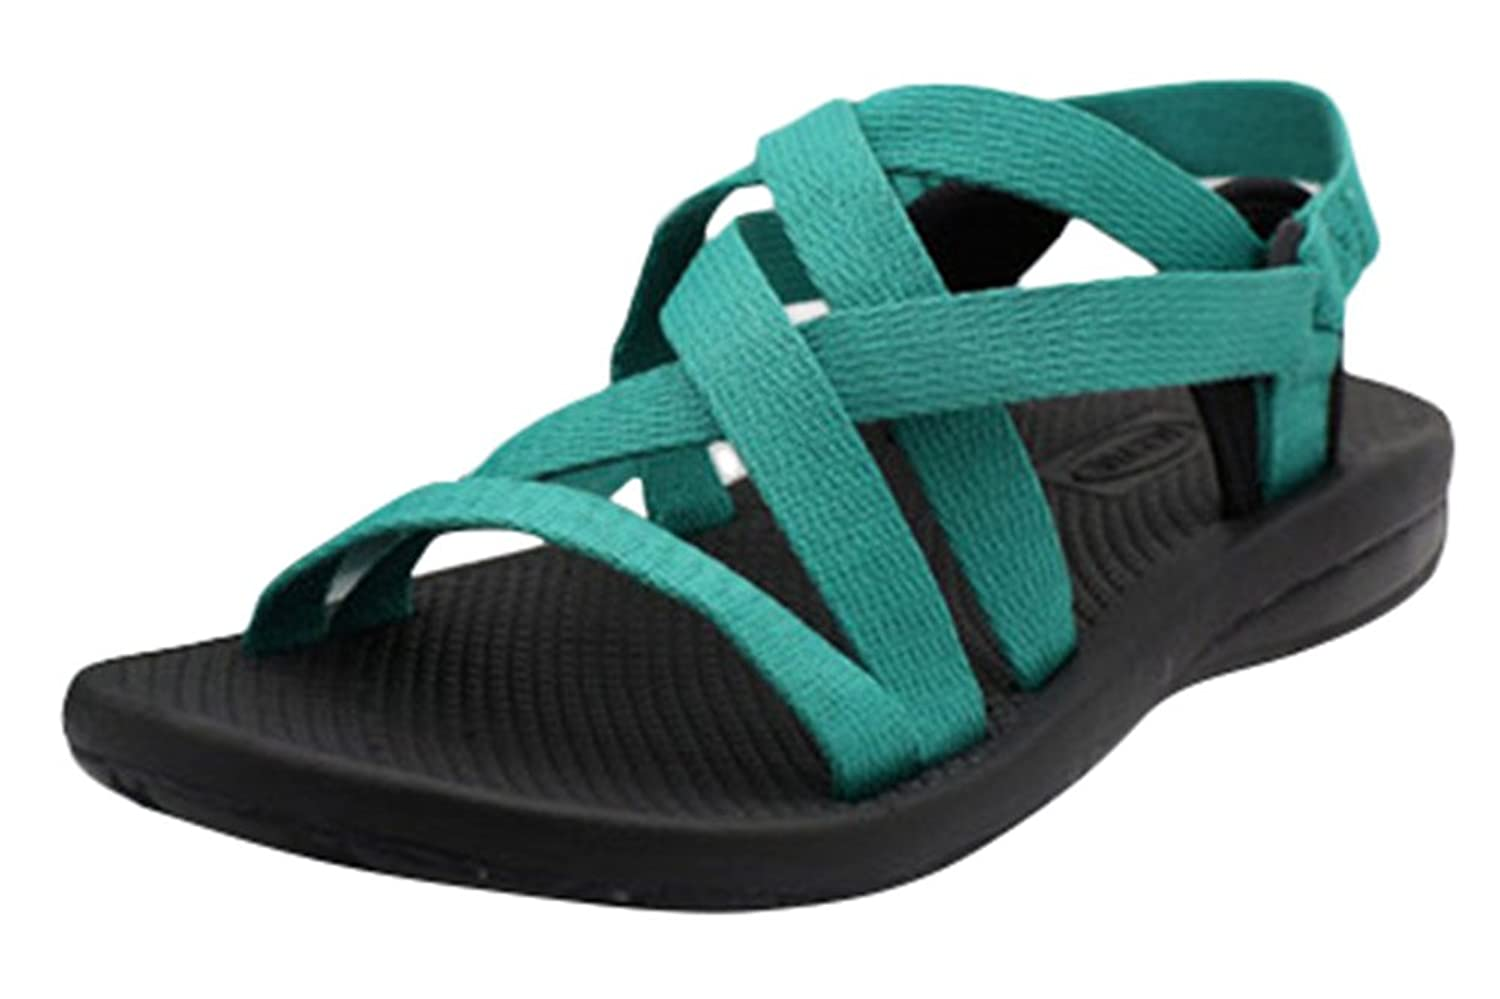 4605557874d8 Women s Flat Sporty Beach Sandal Water Shoes Casual Athletic Sandals 70%OFF